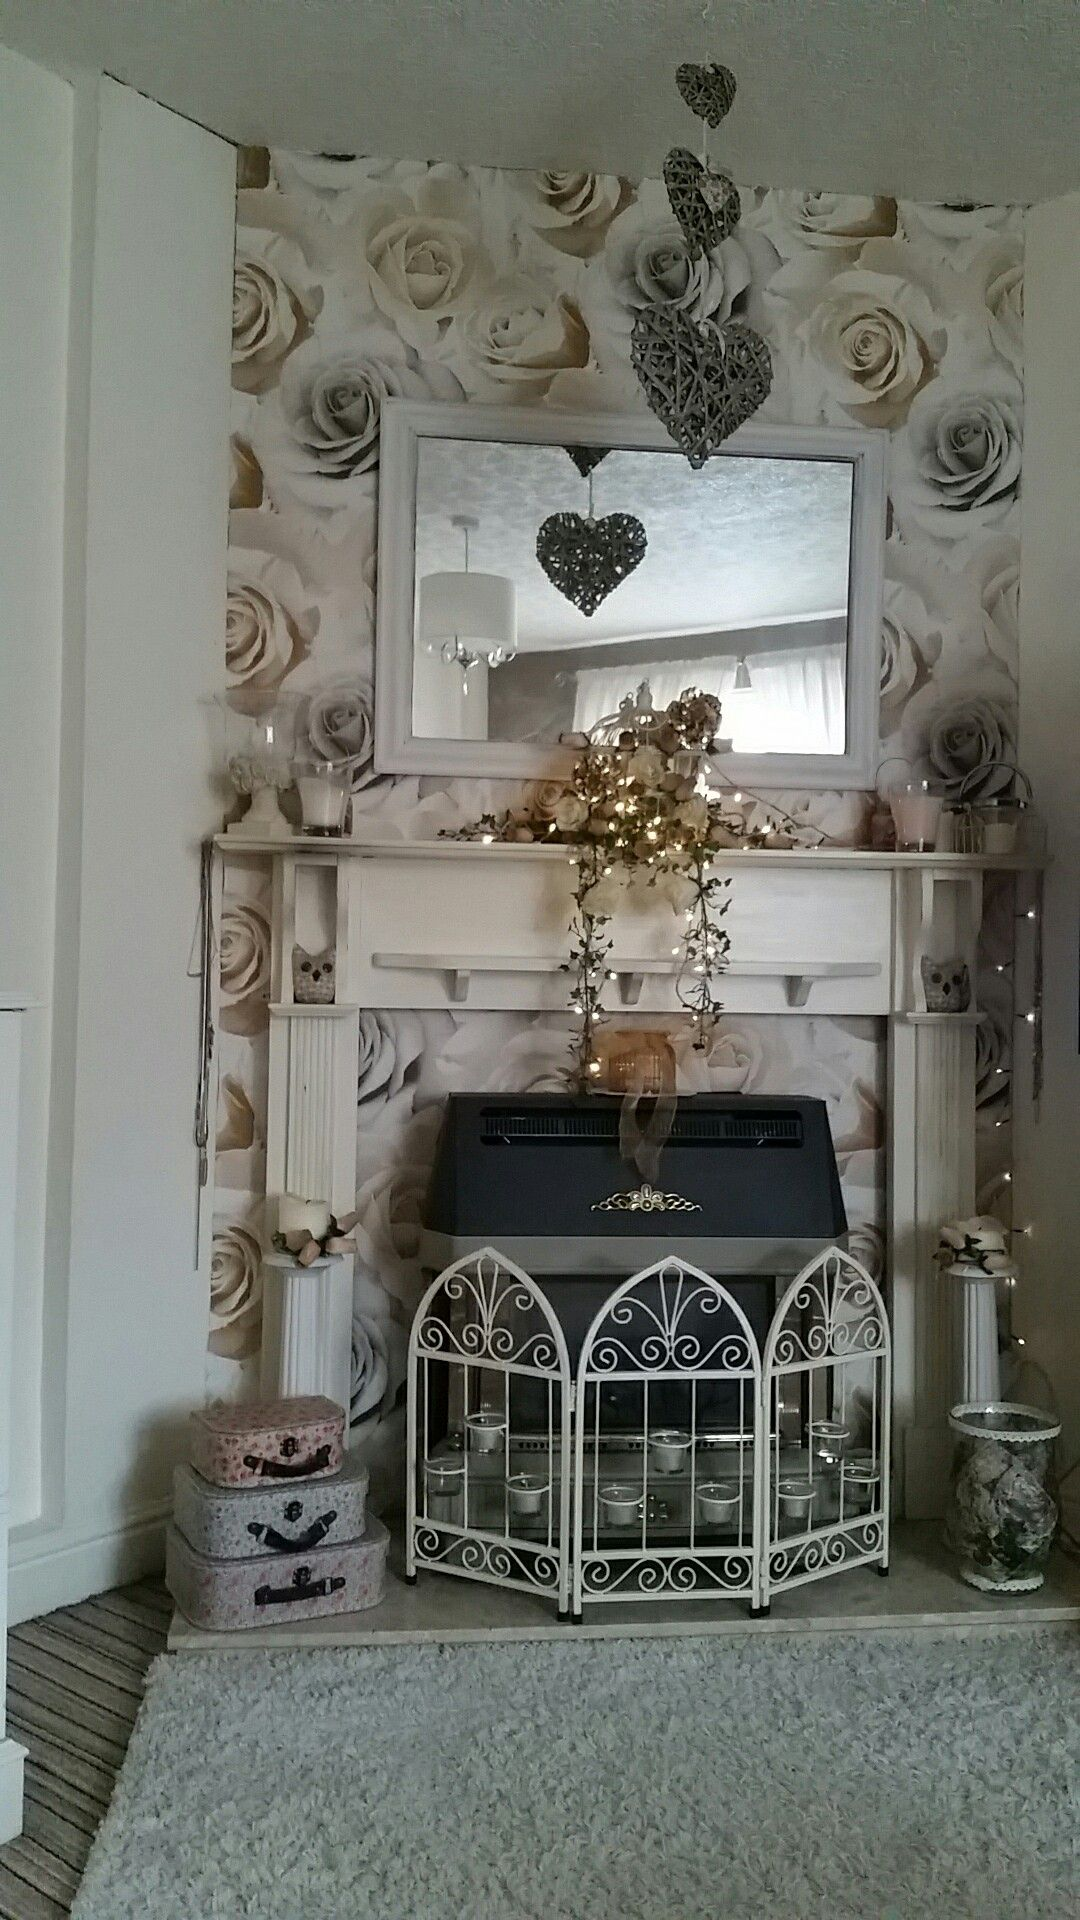 My own little shabby chic fireplace. Up cycled a £20 fire surround ...